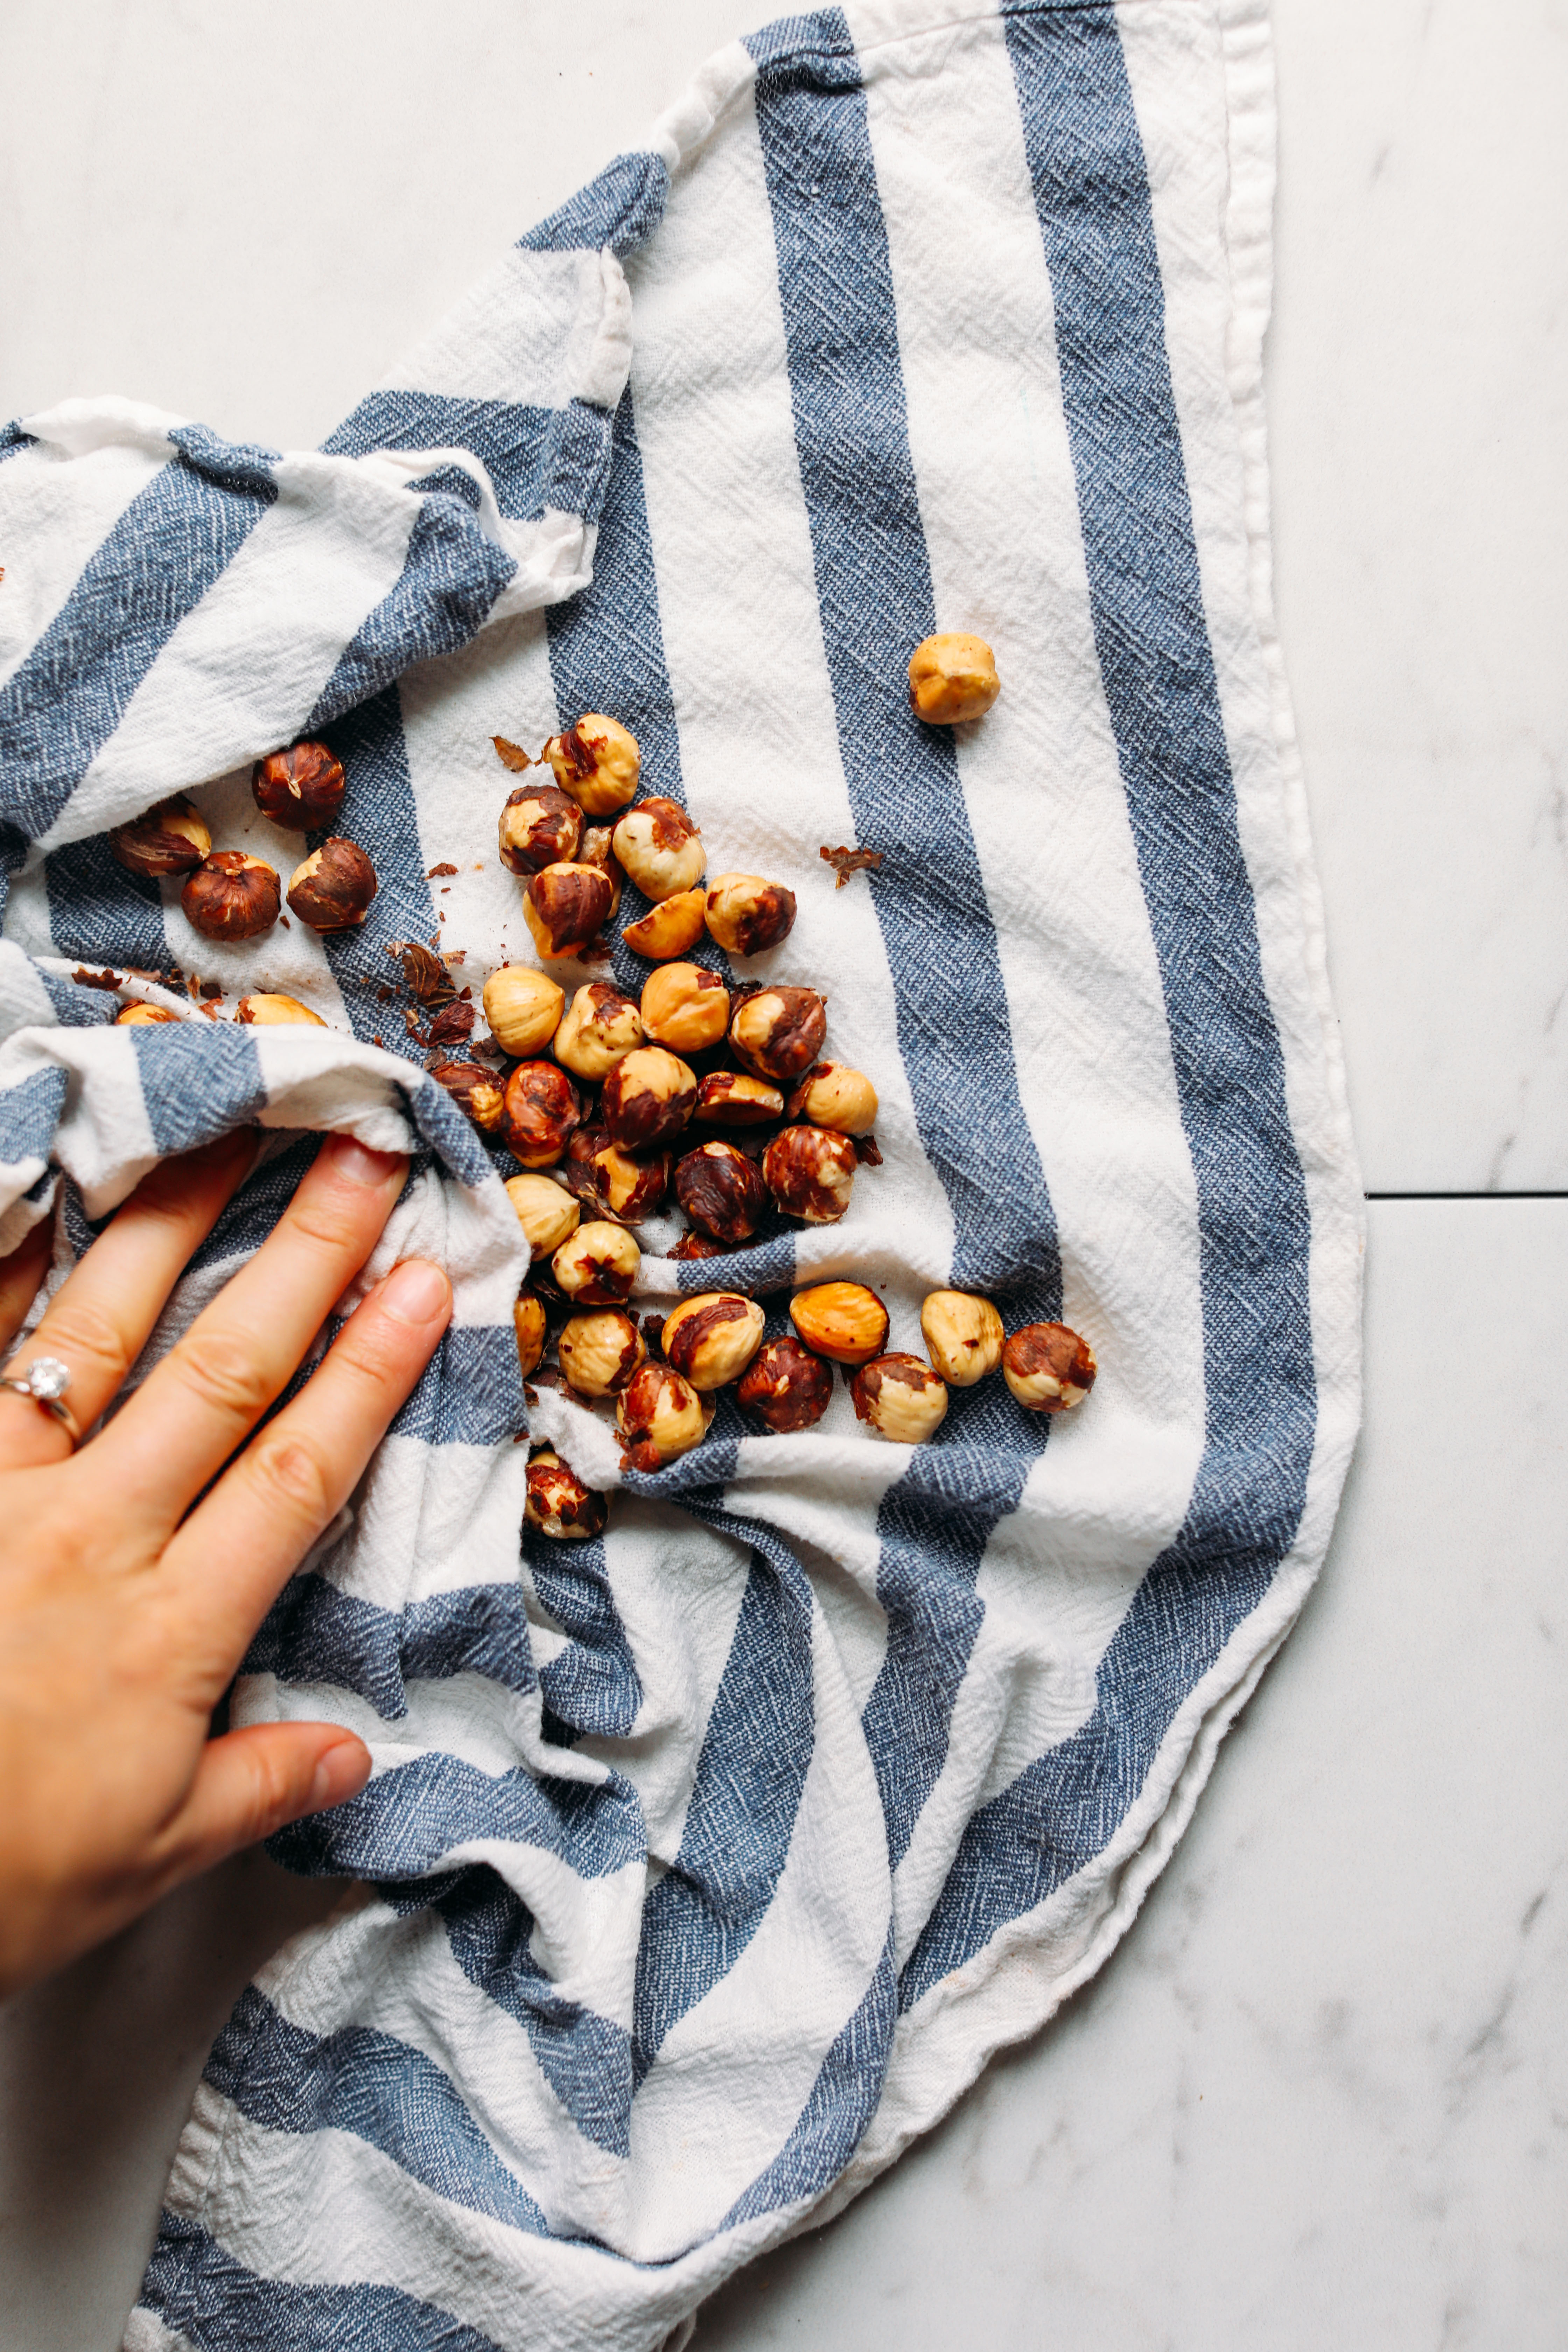 Using a dish towel to remove the skins of roasted hazelnuts